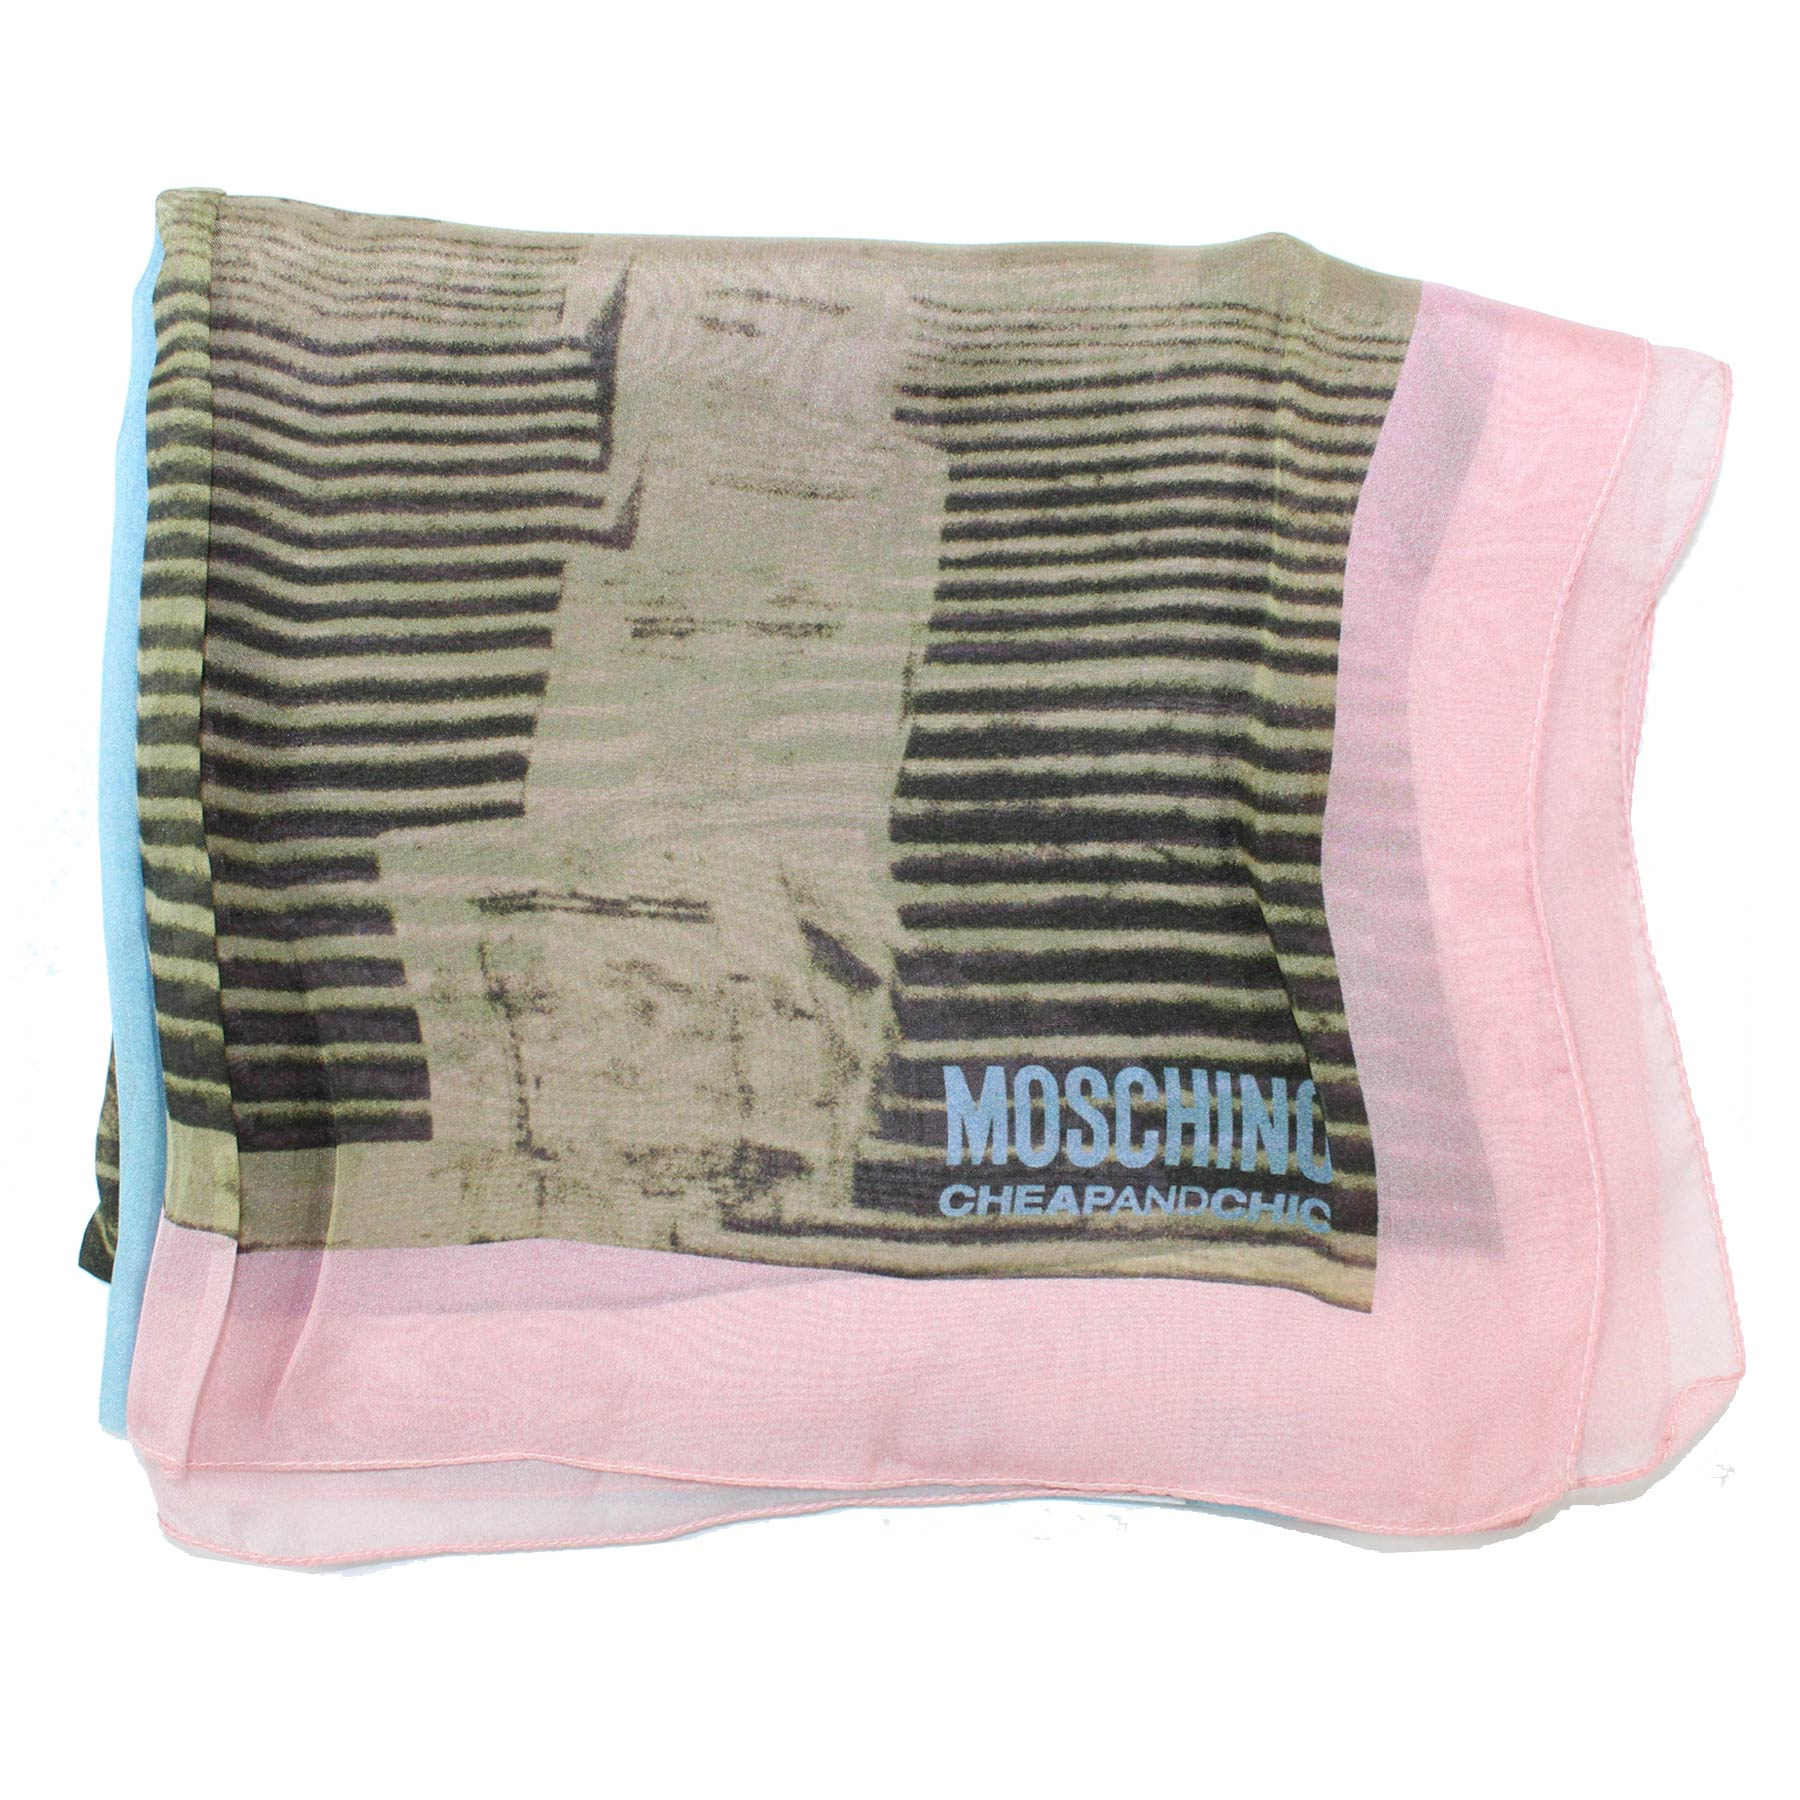 Moschino Scarf Pink Taupe Blue - Chiffon Silk Cheap And Chic Shawl SALE